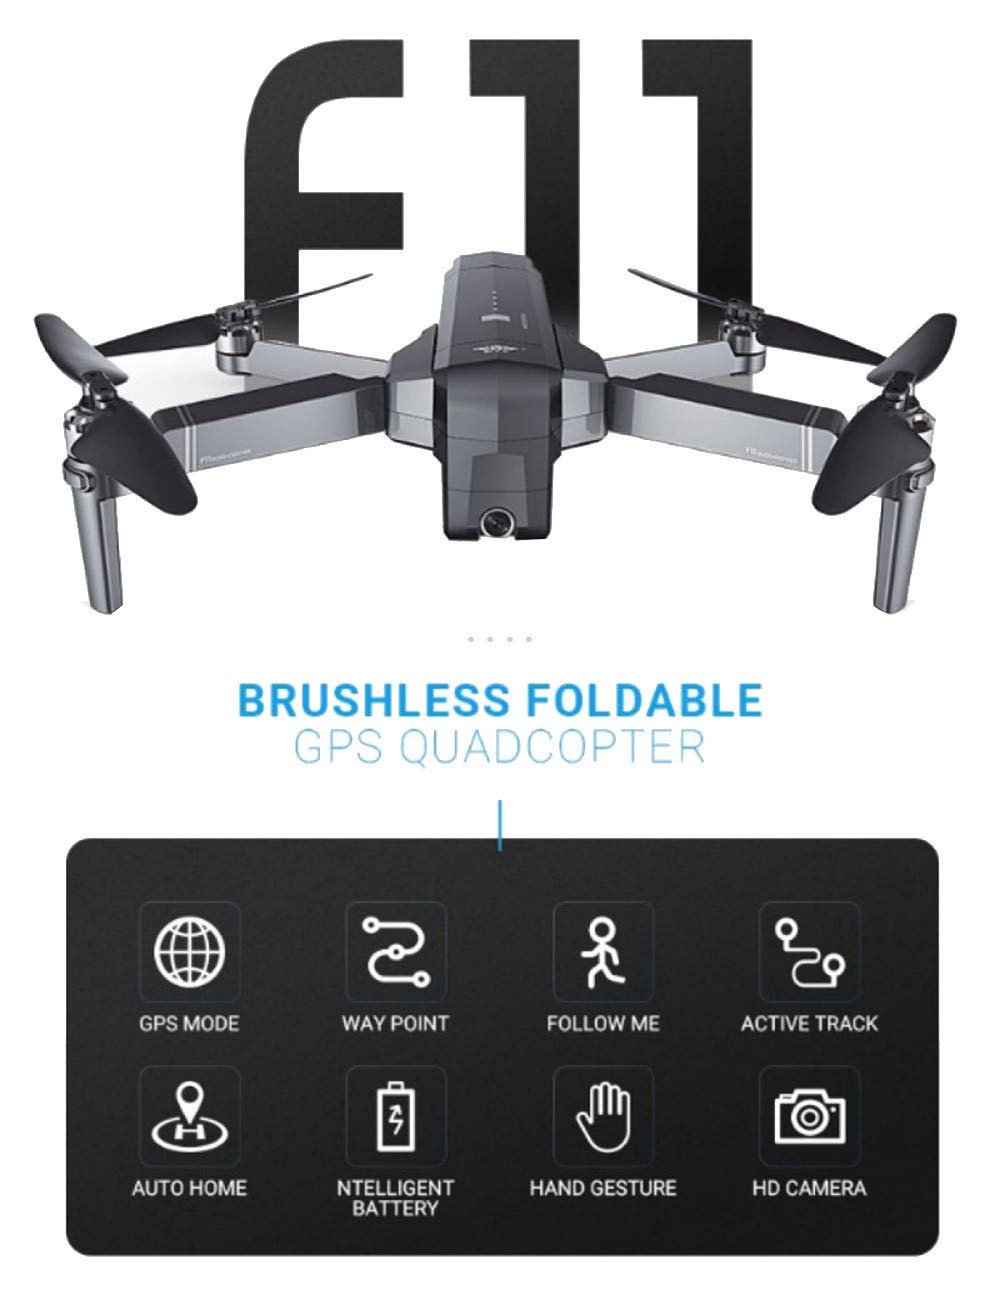 MOZATE New SJRC F11 GPS 5G WiFi FPV 1080P HD Cam Foldable Brushless RC Drone Quadcopter (Black) by MOZATE (Image #4)